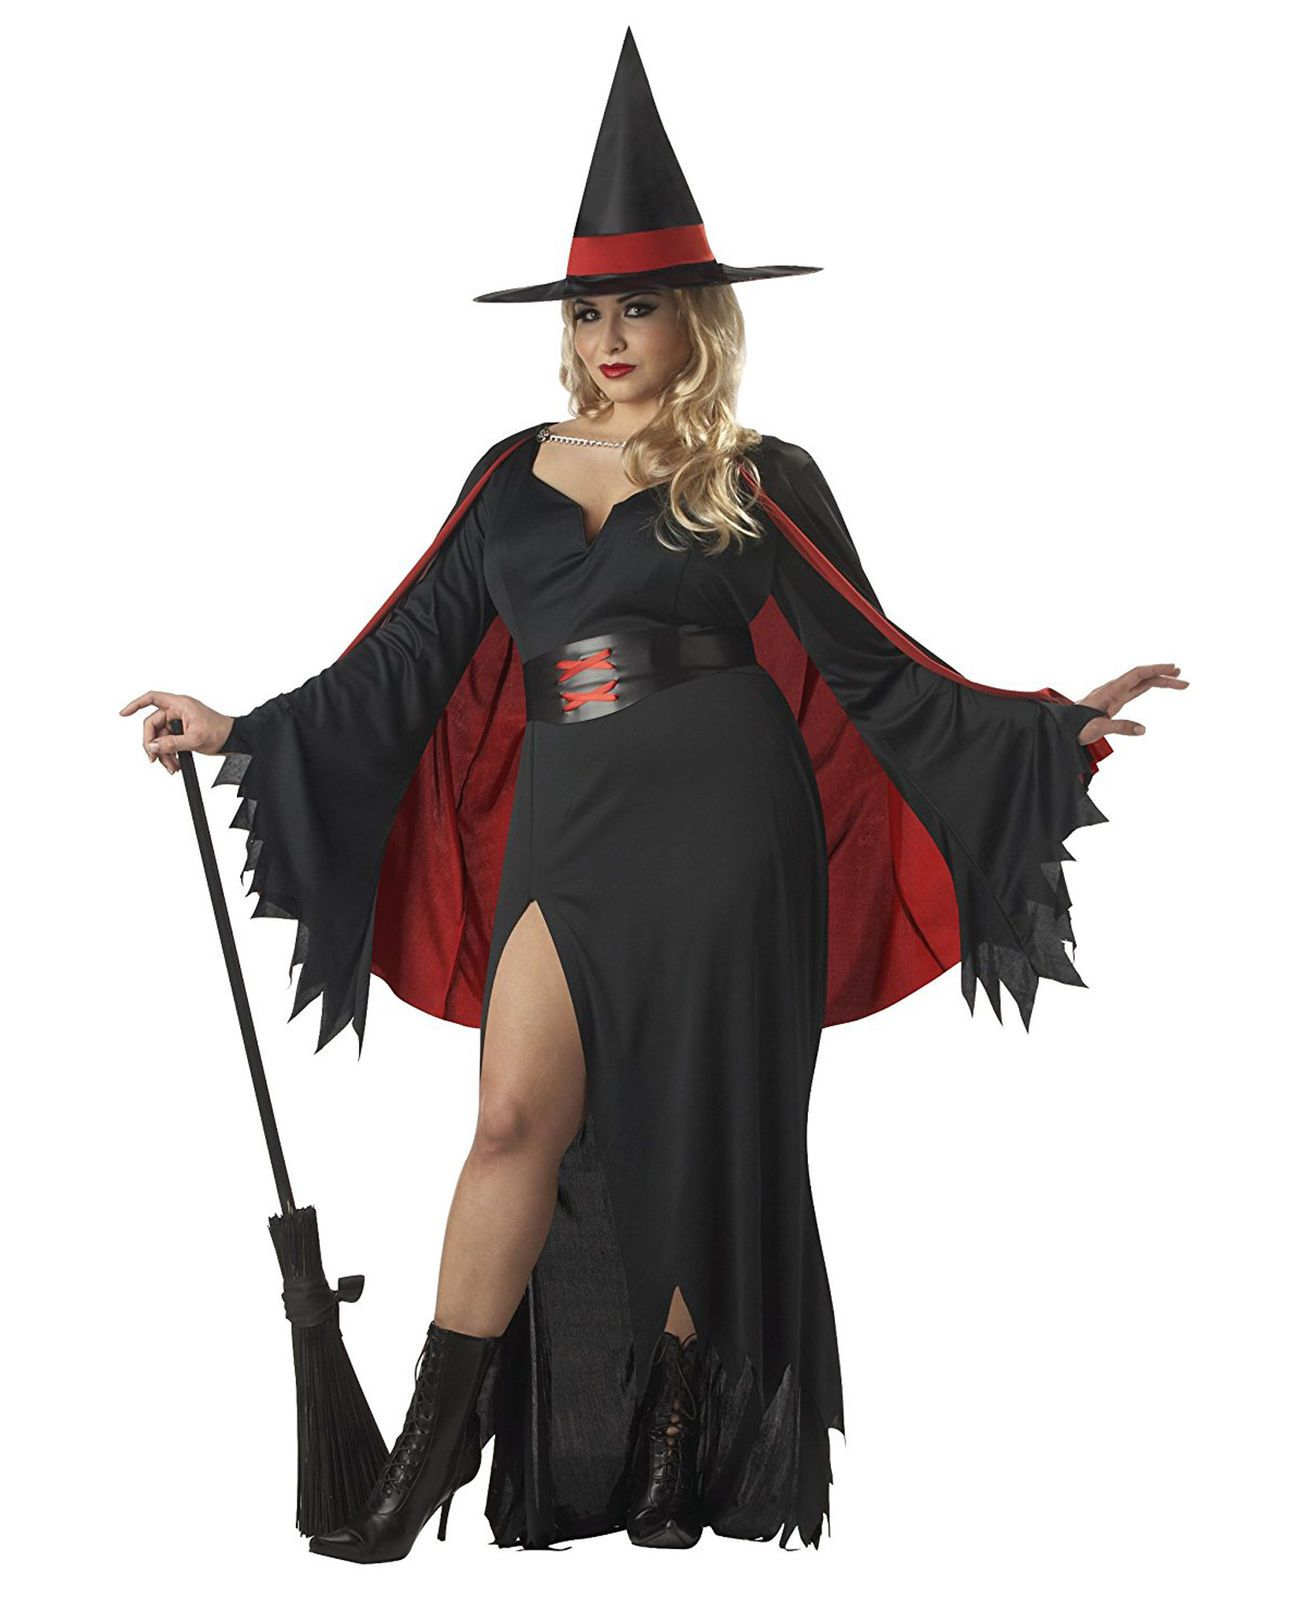 Adult Cape Costume and Big Hat with Spiderweb